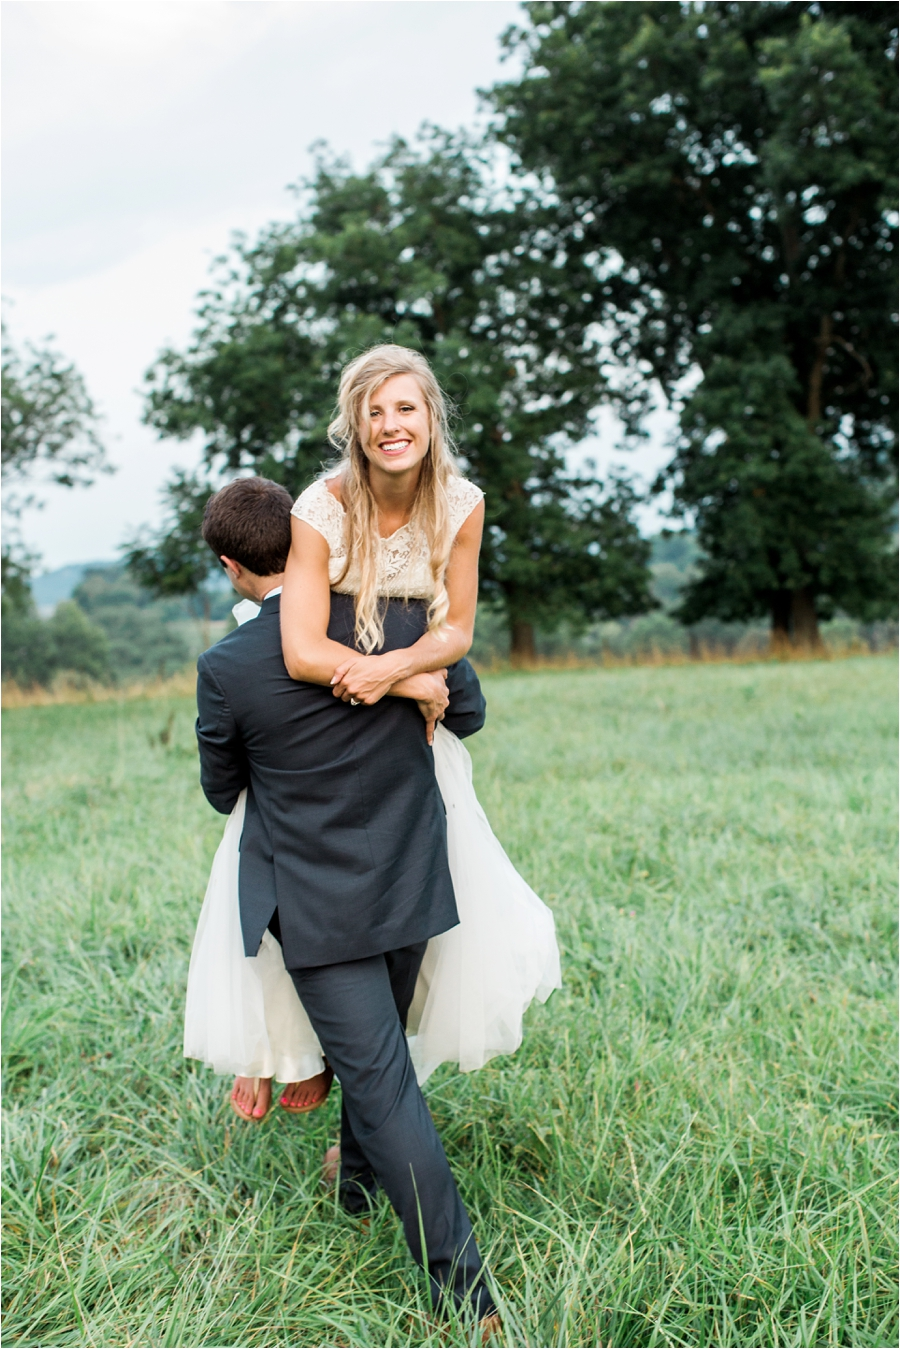 heartfelt summer wedding at big spring farm by charlottesville wedding photographer, amy nicole photography_0104